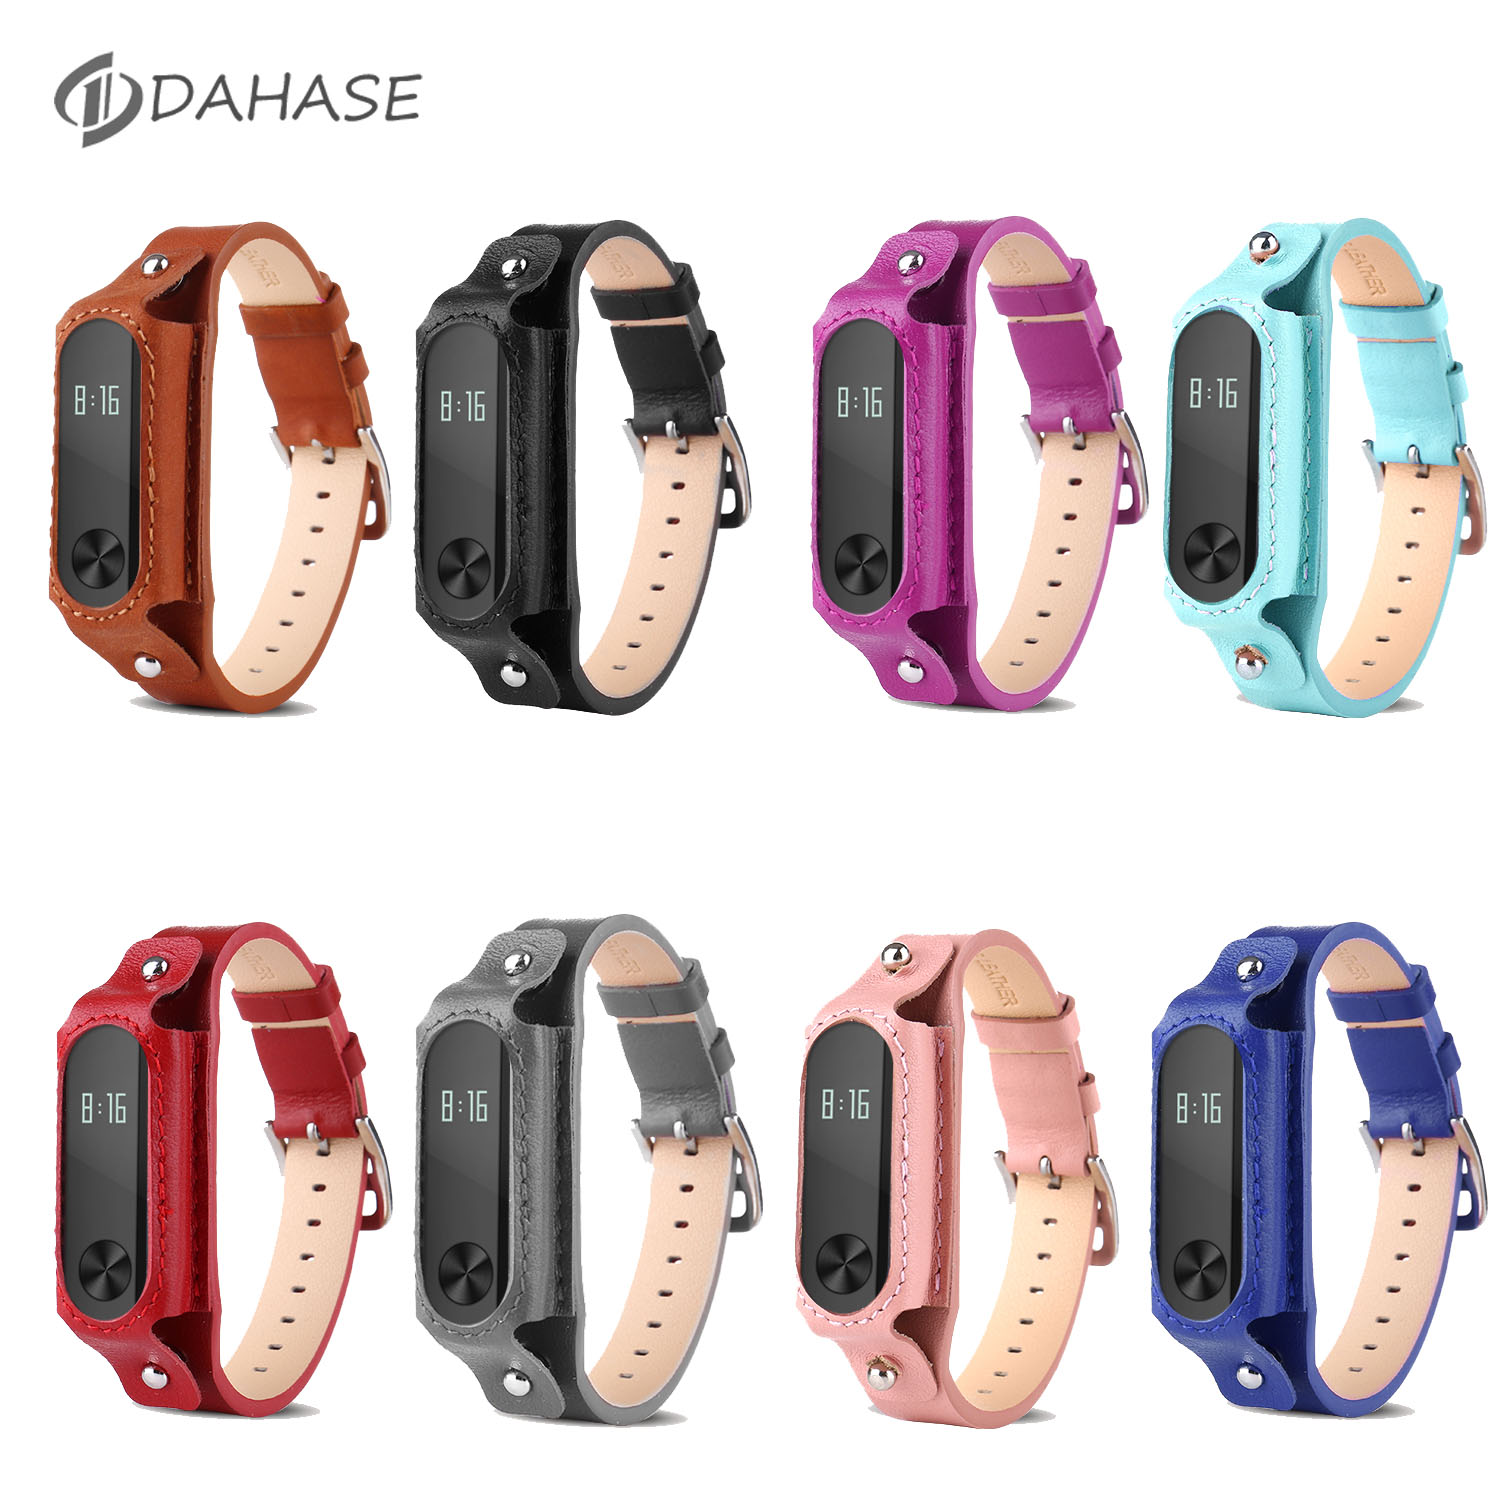 DAHASE 8 Colors Mi Band 2nd Bracelet Genuine Leather Strap Band For Xiaomi Mi Band 2 Miband 2 WristBand Replacement Strap new fashion original silicon wrist strap wristband bracelet replacement for xiaomi mi band 2 dignity 8 9